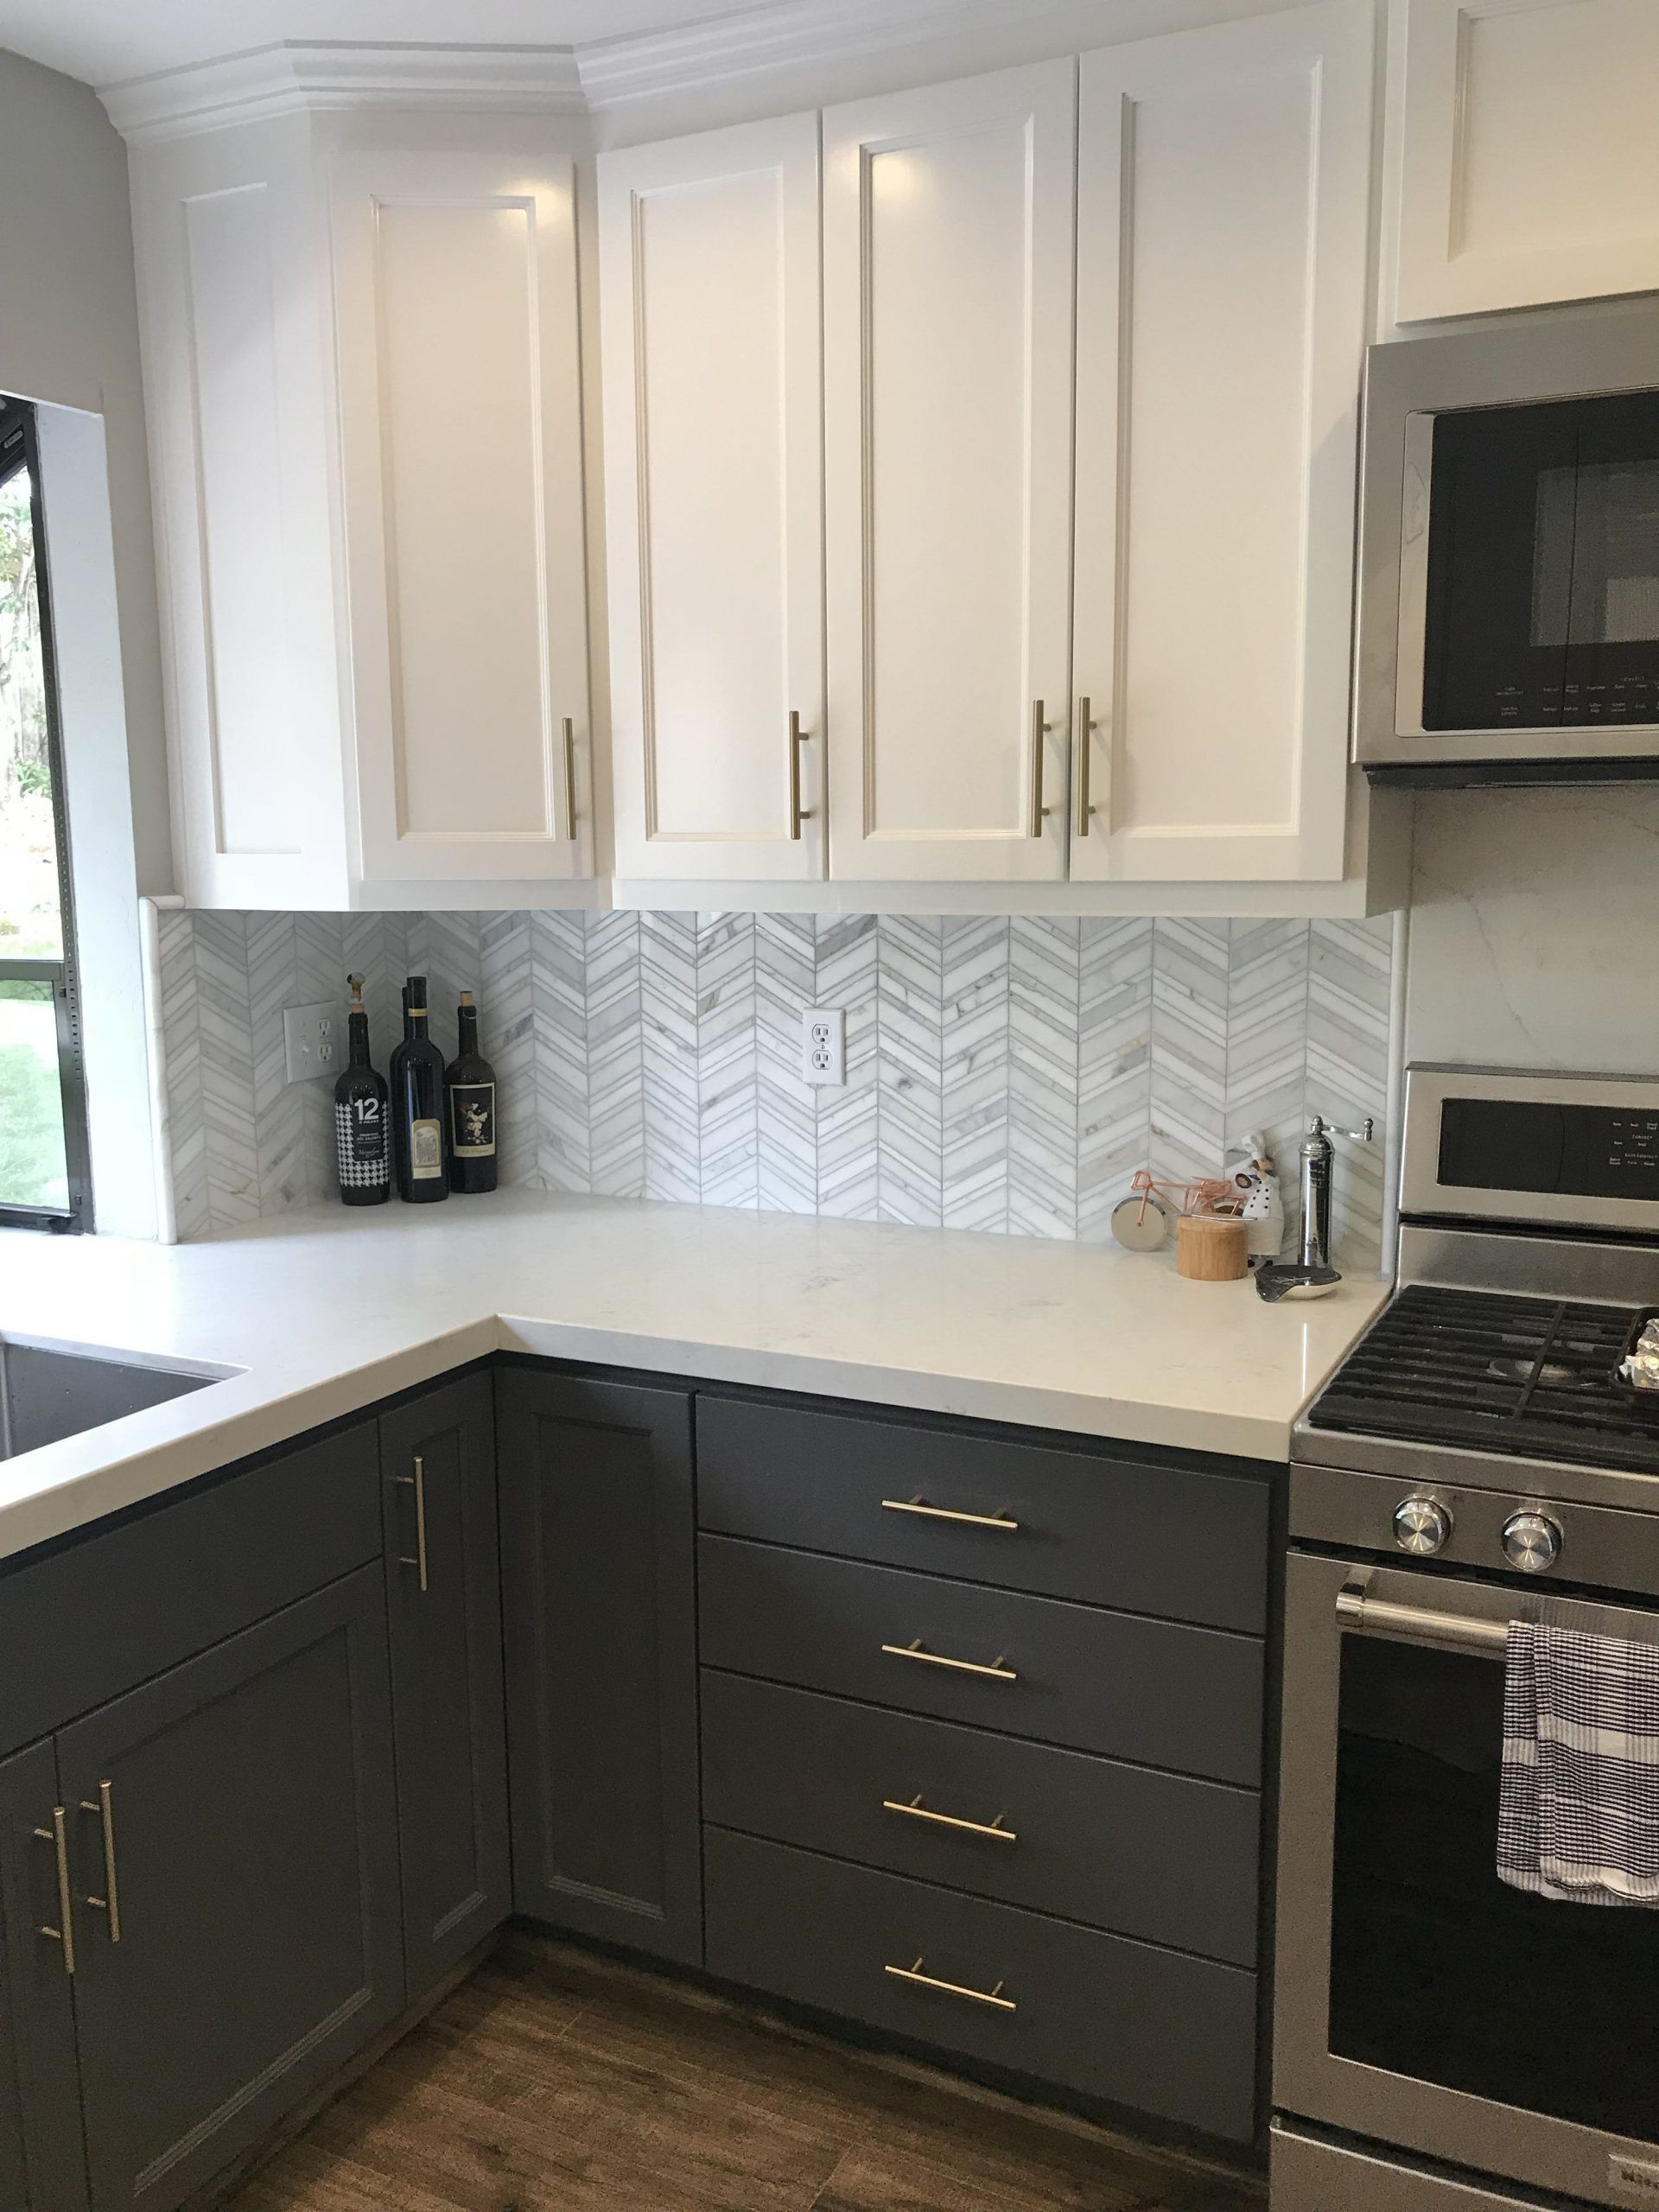 Sherwin Williams Peppercorn Kitchen Cabinets Tipperary Quartz Countertop Calac In 2020 Kitchen Remodel Small Painted Kitchen Cabinets Colors New Kitchen Cabinets